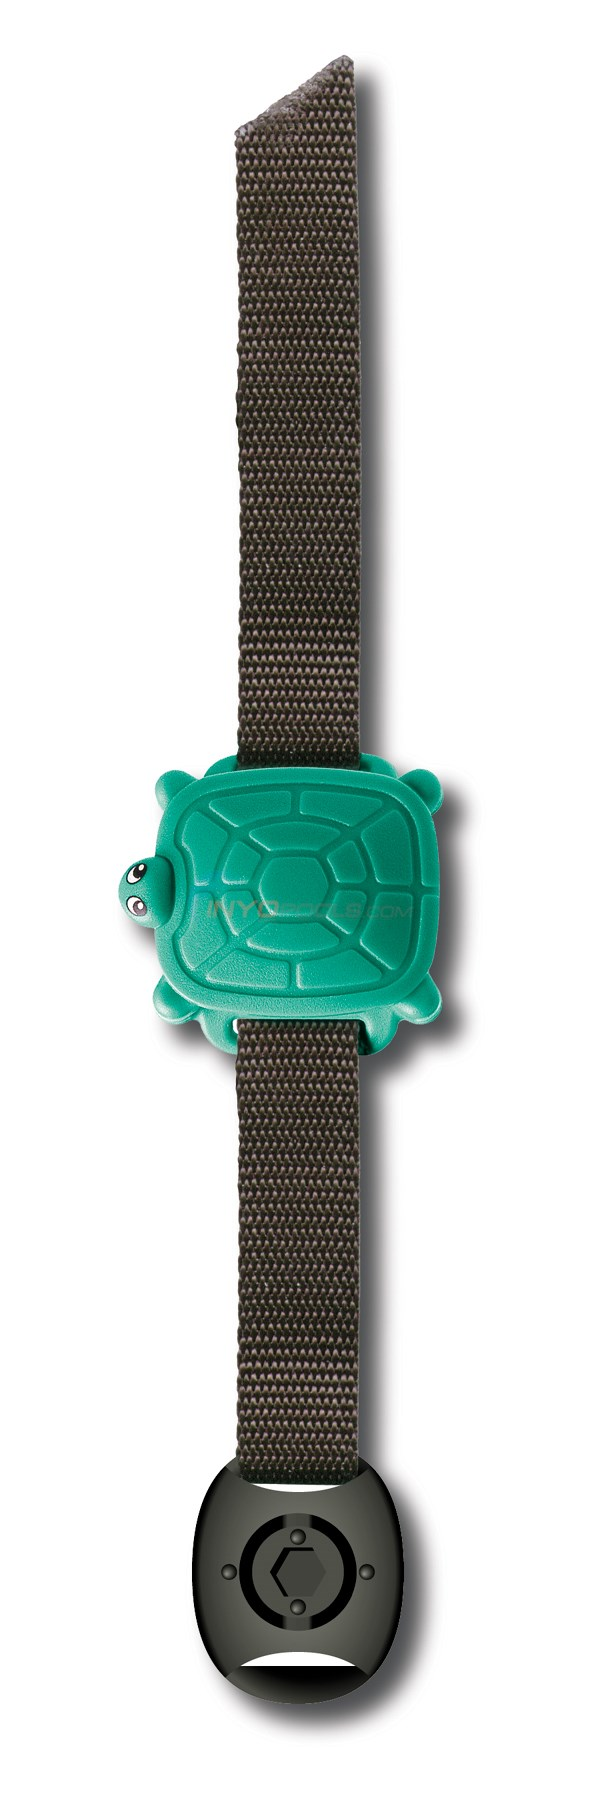 Terripan Safety Turtle Base Station w/ Green Wristband - NA450 - Alternate 2